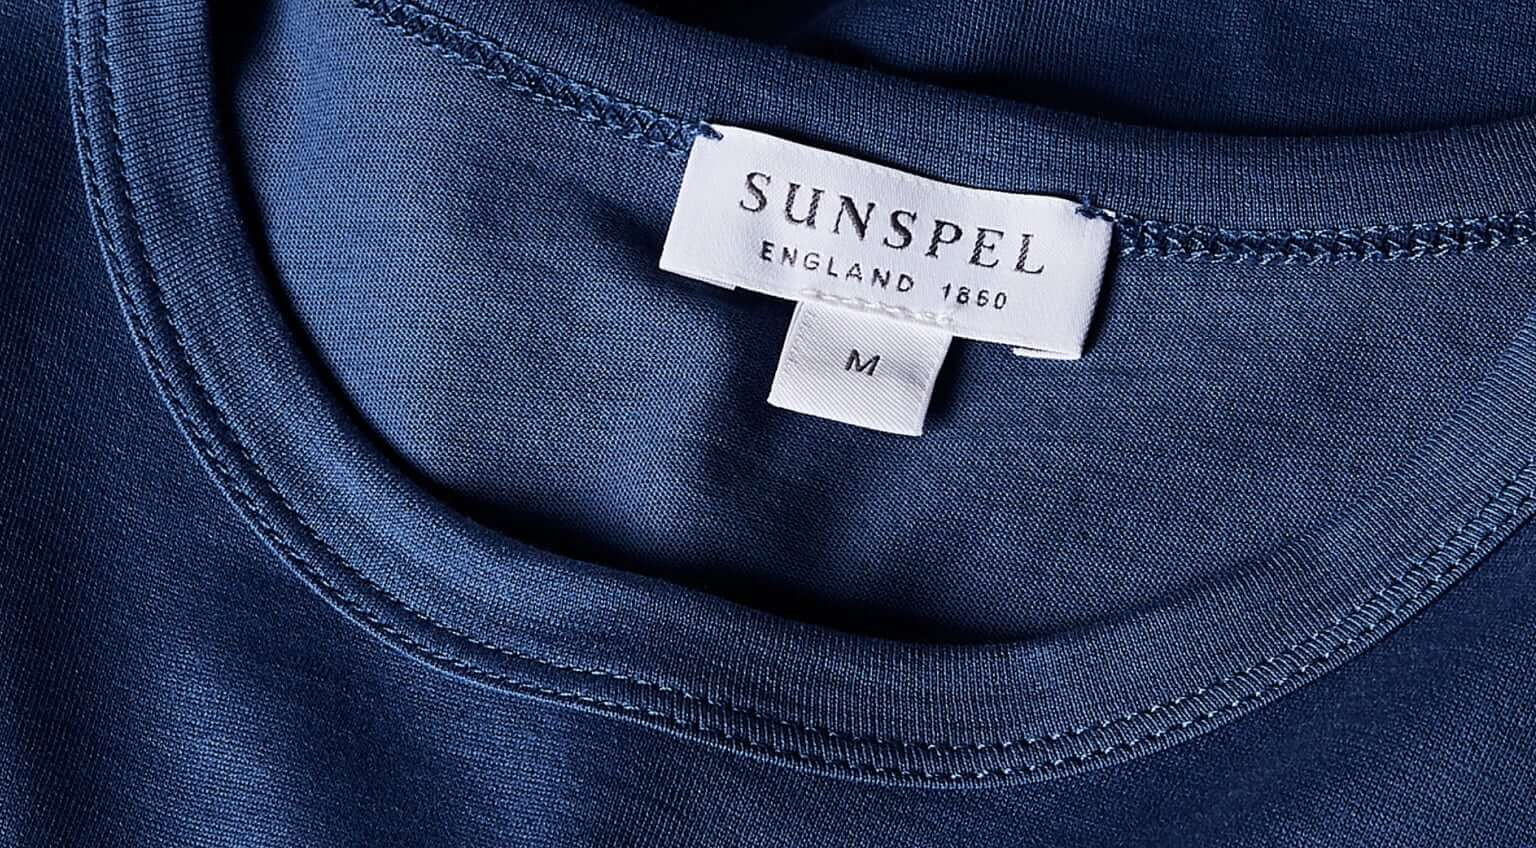 Sunspel's Tees and Polos Are on Sale